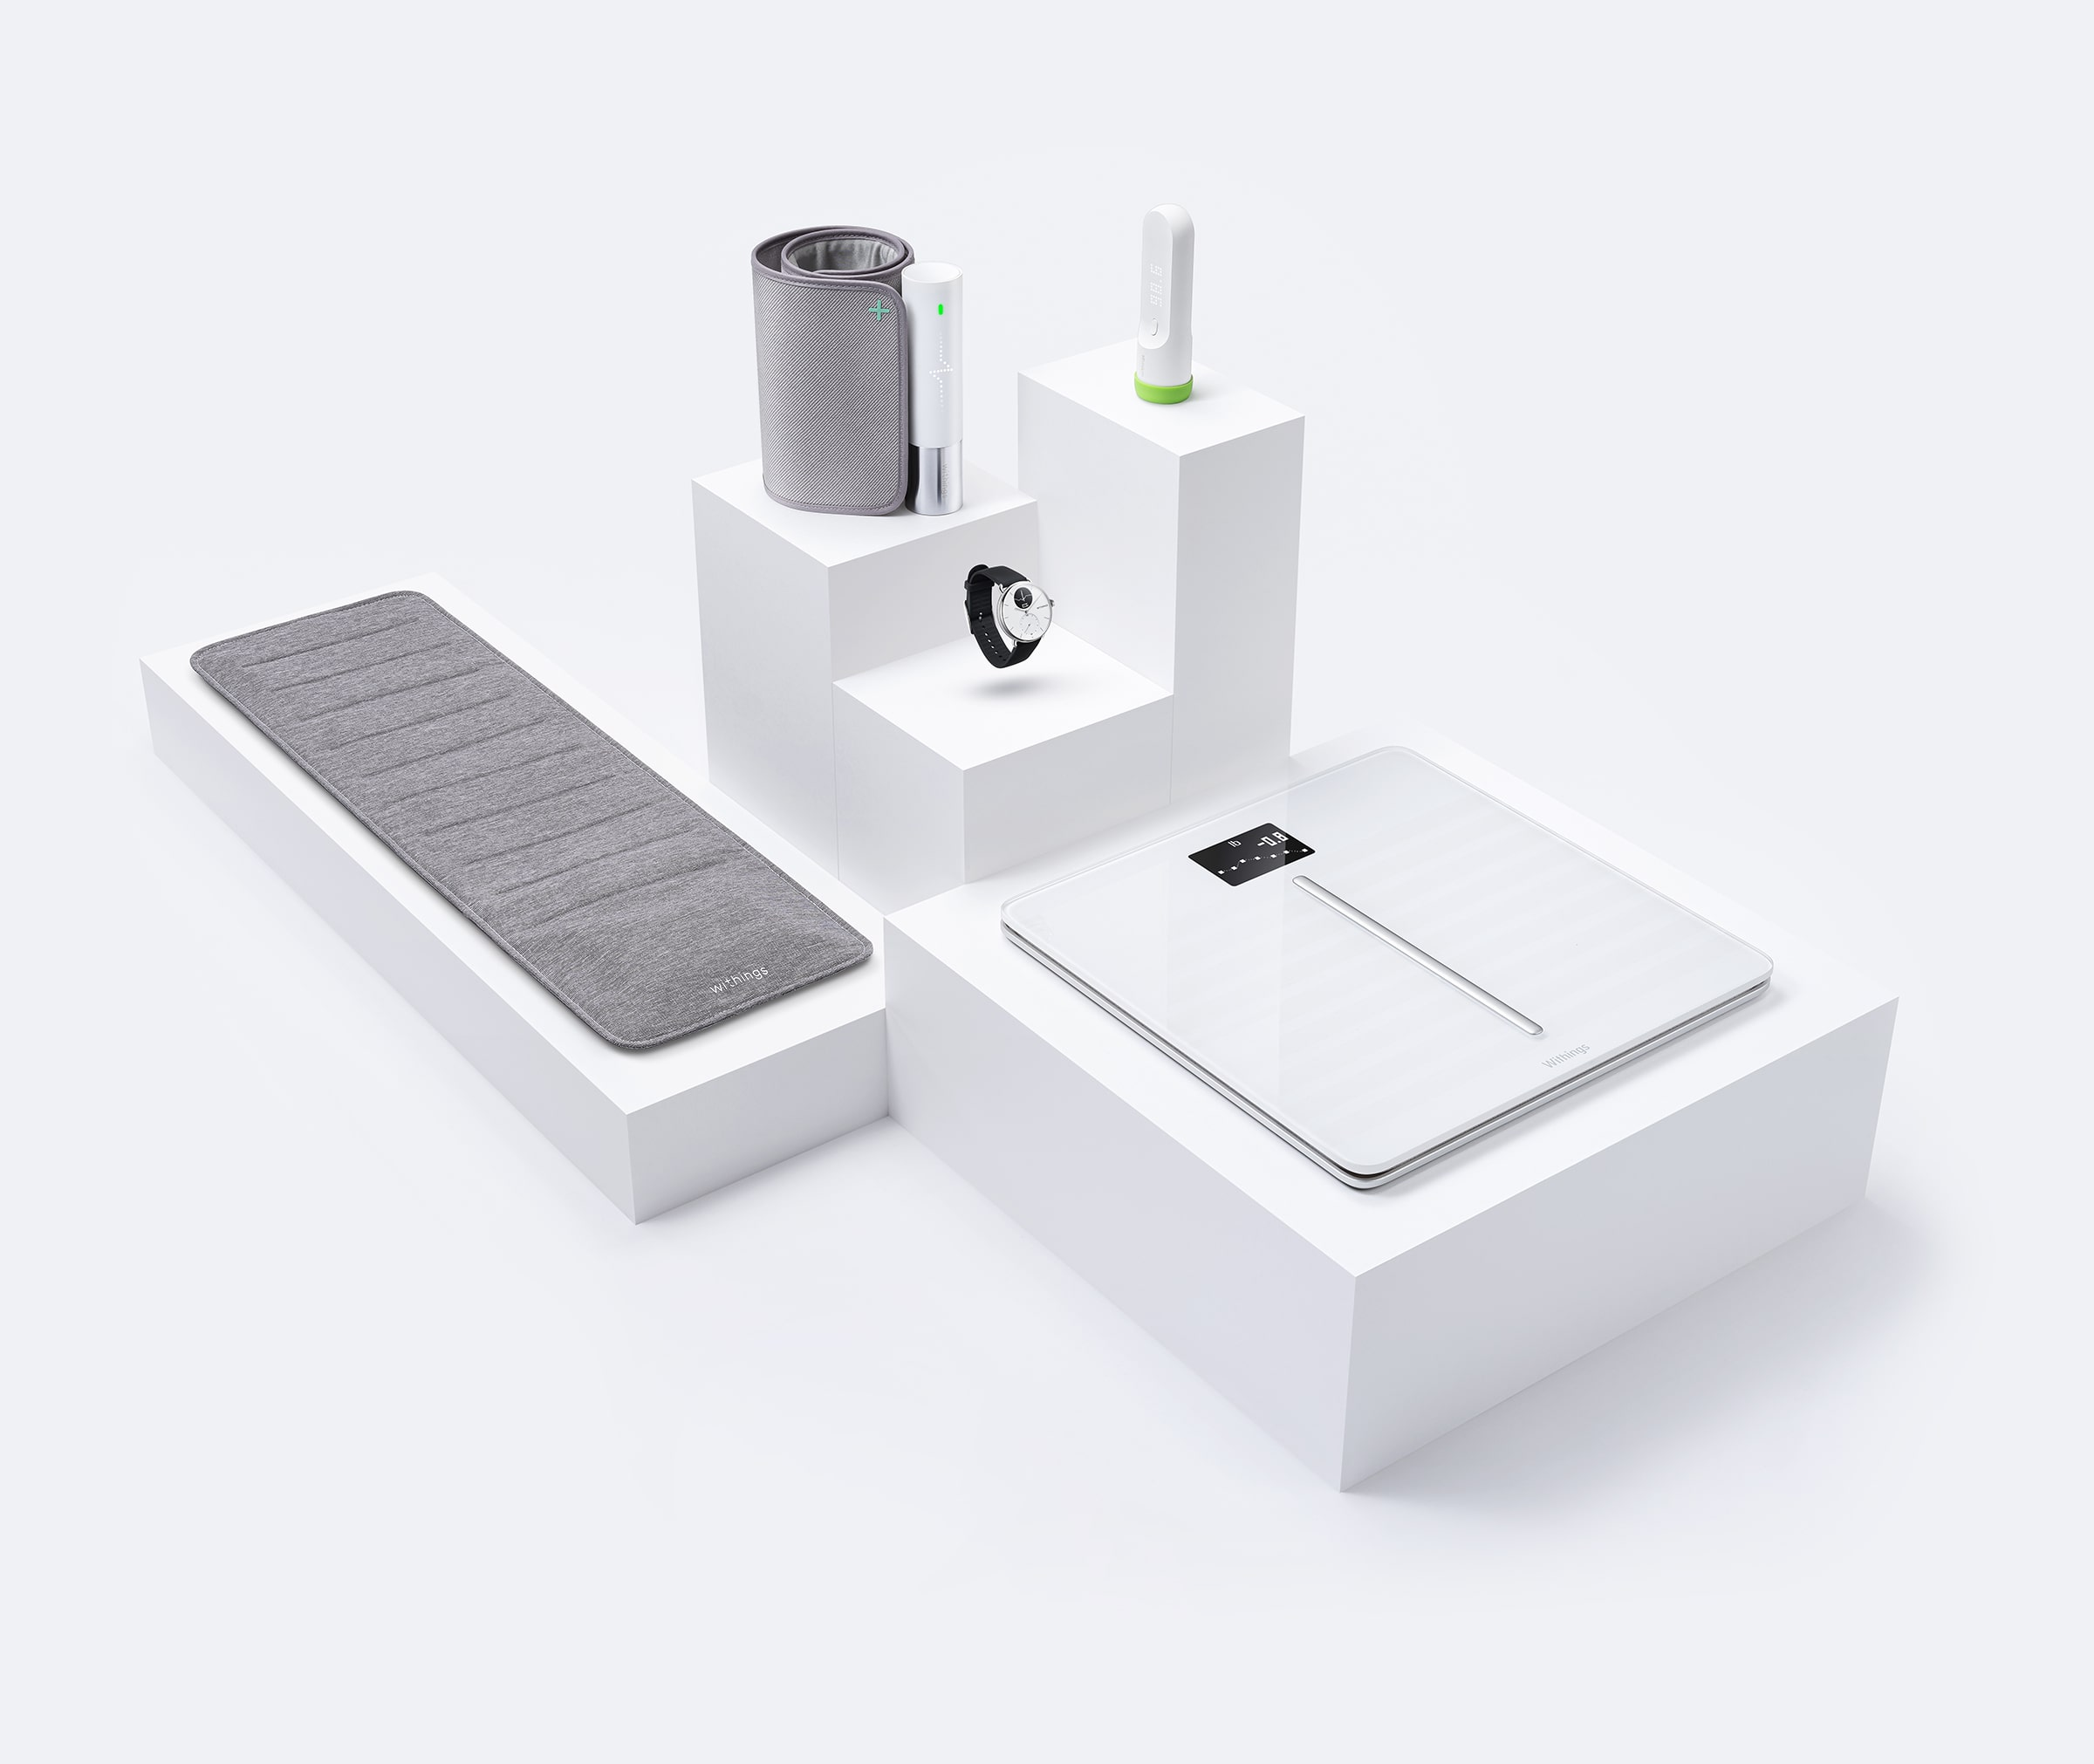 Withings ecosystem